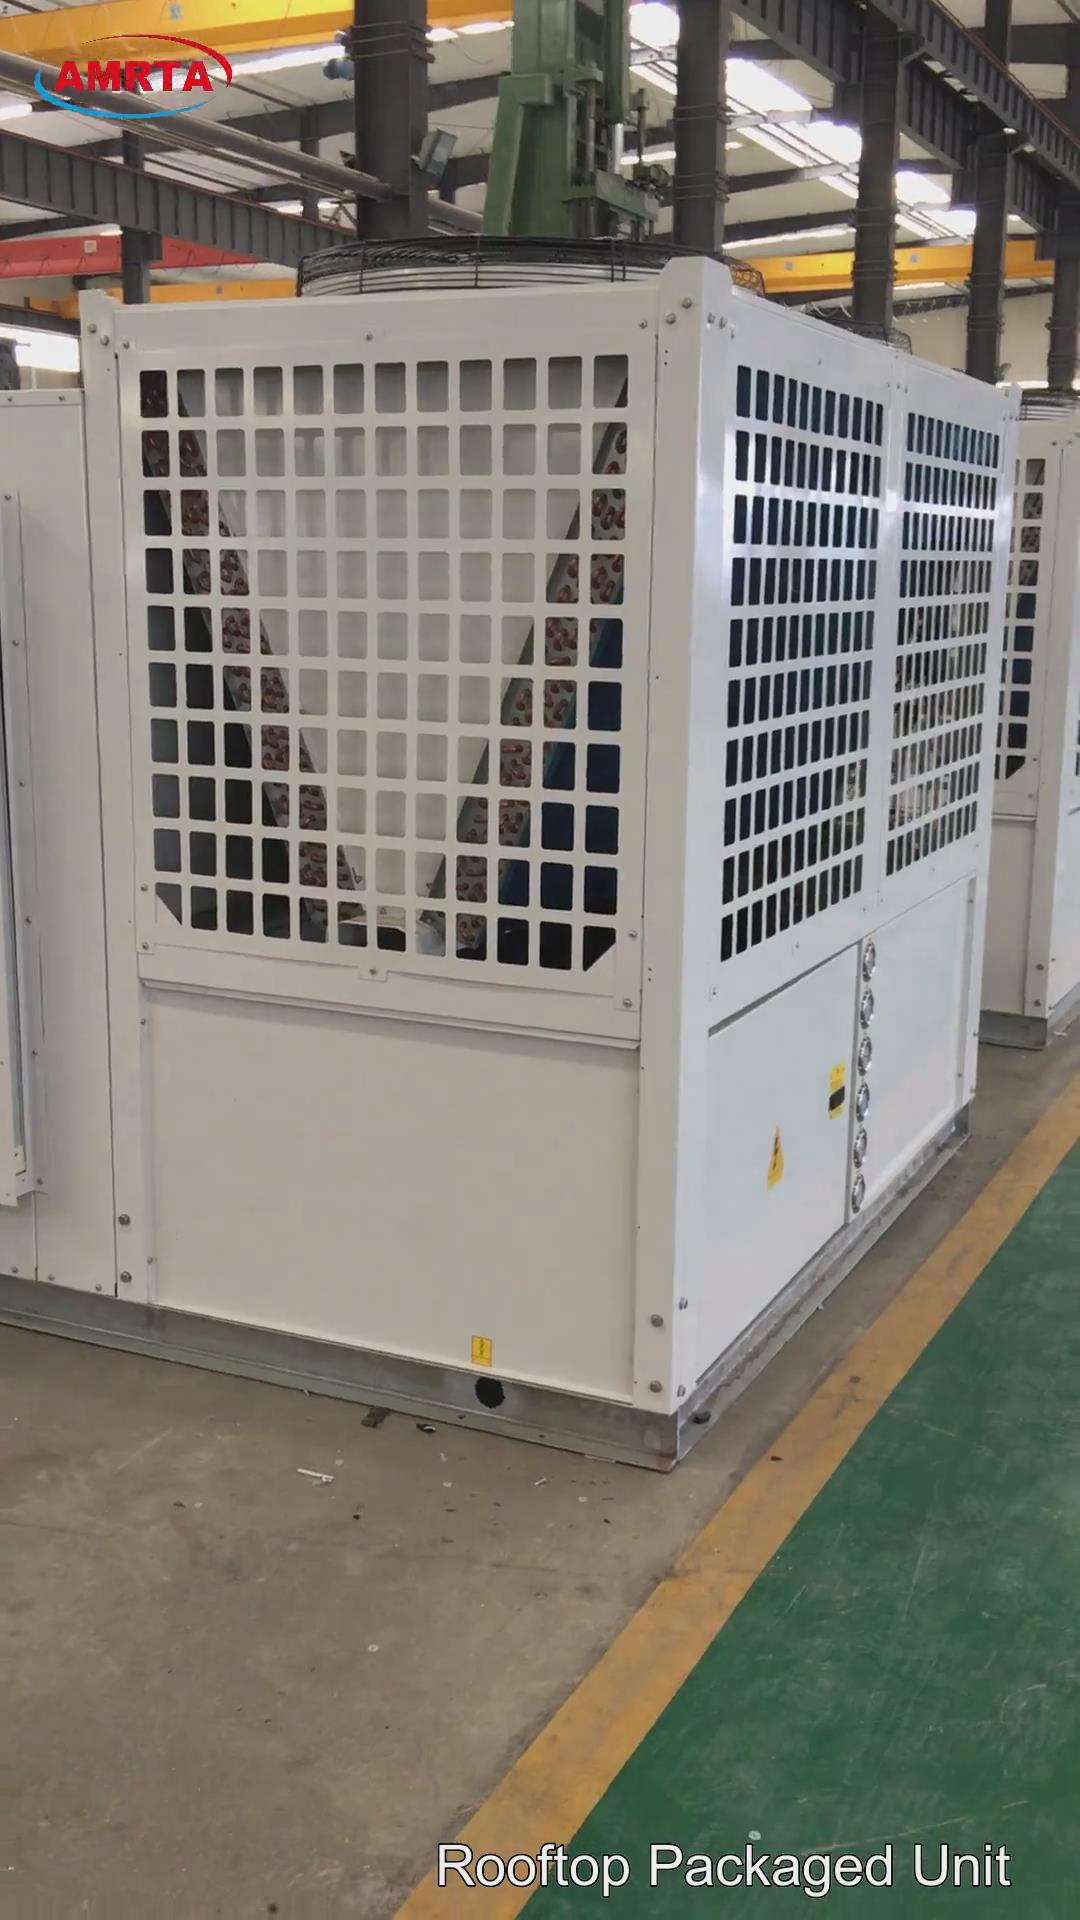 105kW Air to Air Rooftop Packaged Unit